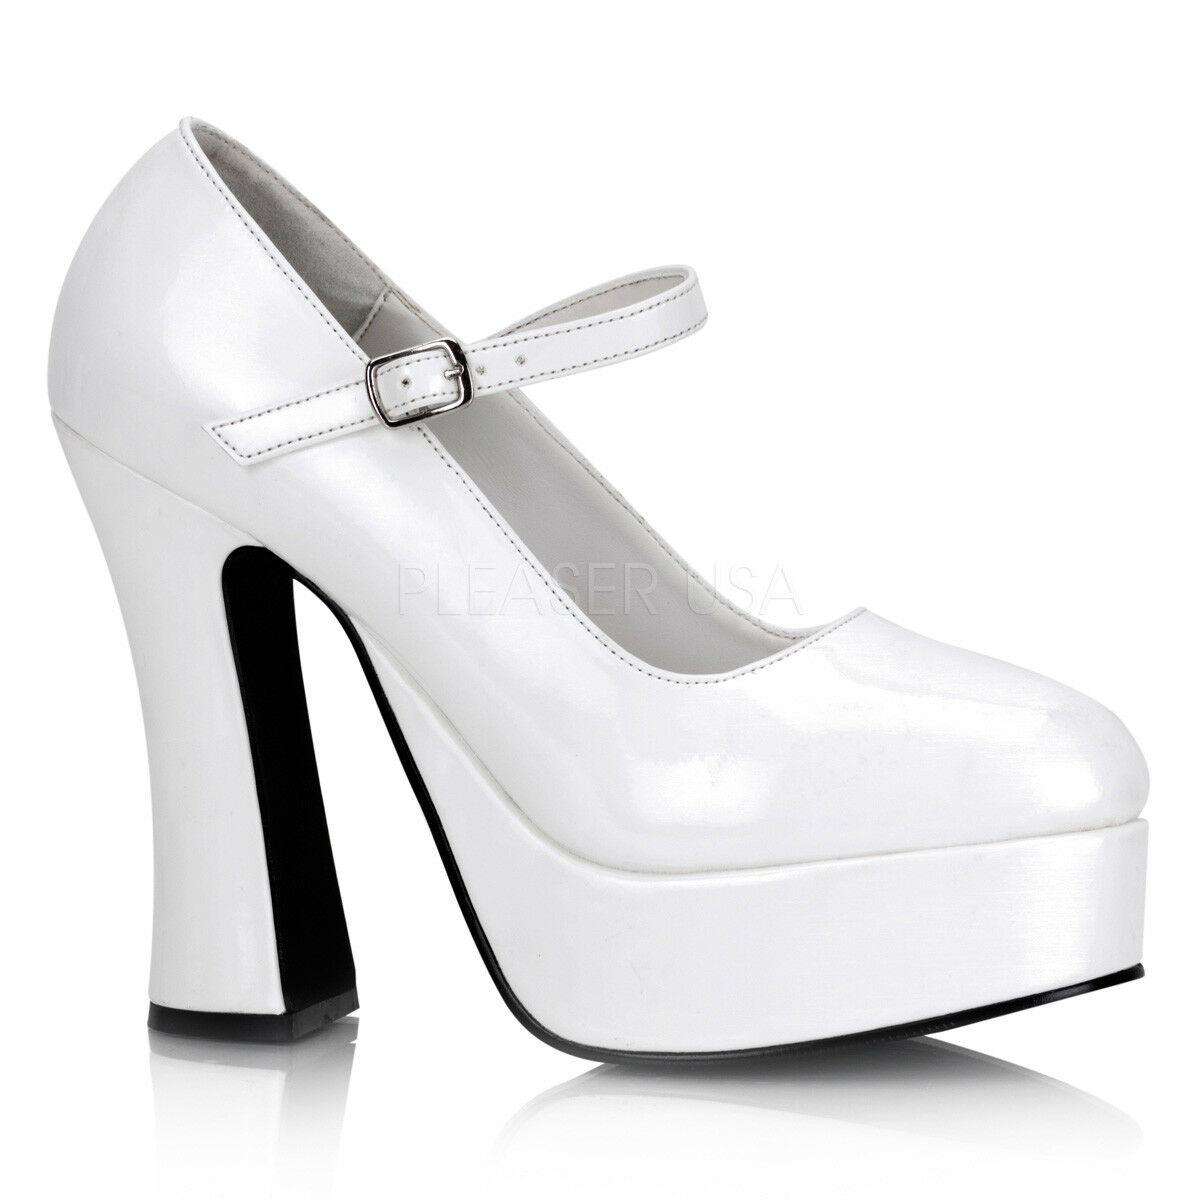 Blanc Plateforme talons Mary Janes Female Impersonator Womans Chaussures Taille 13 14 15